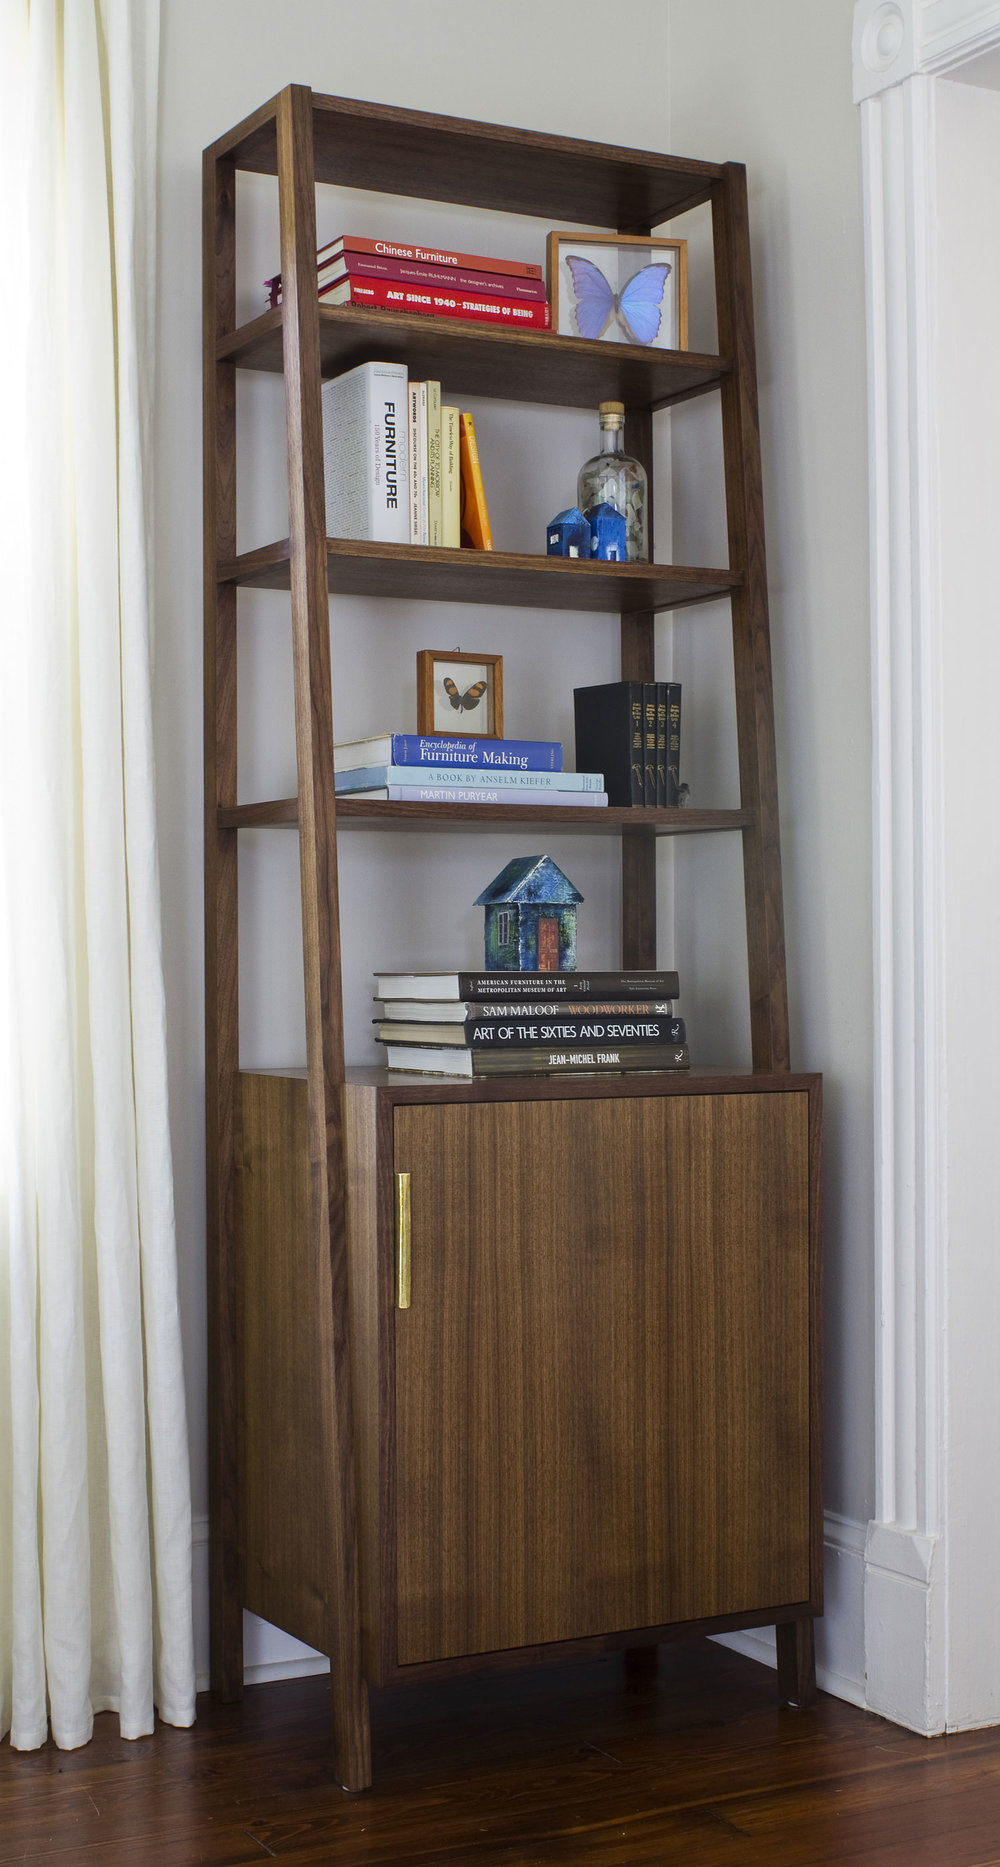 The Rivers bookcase in walnut